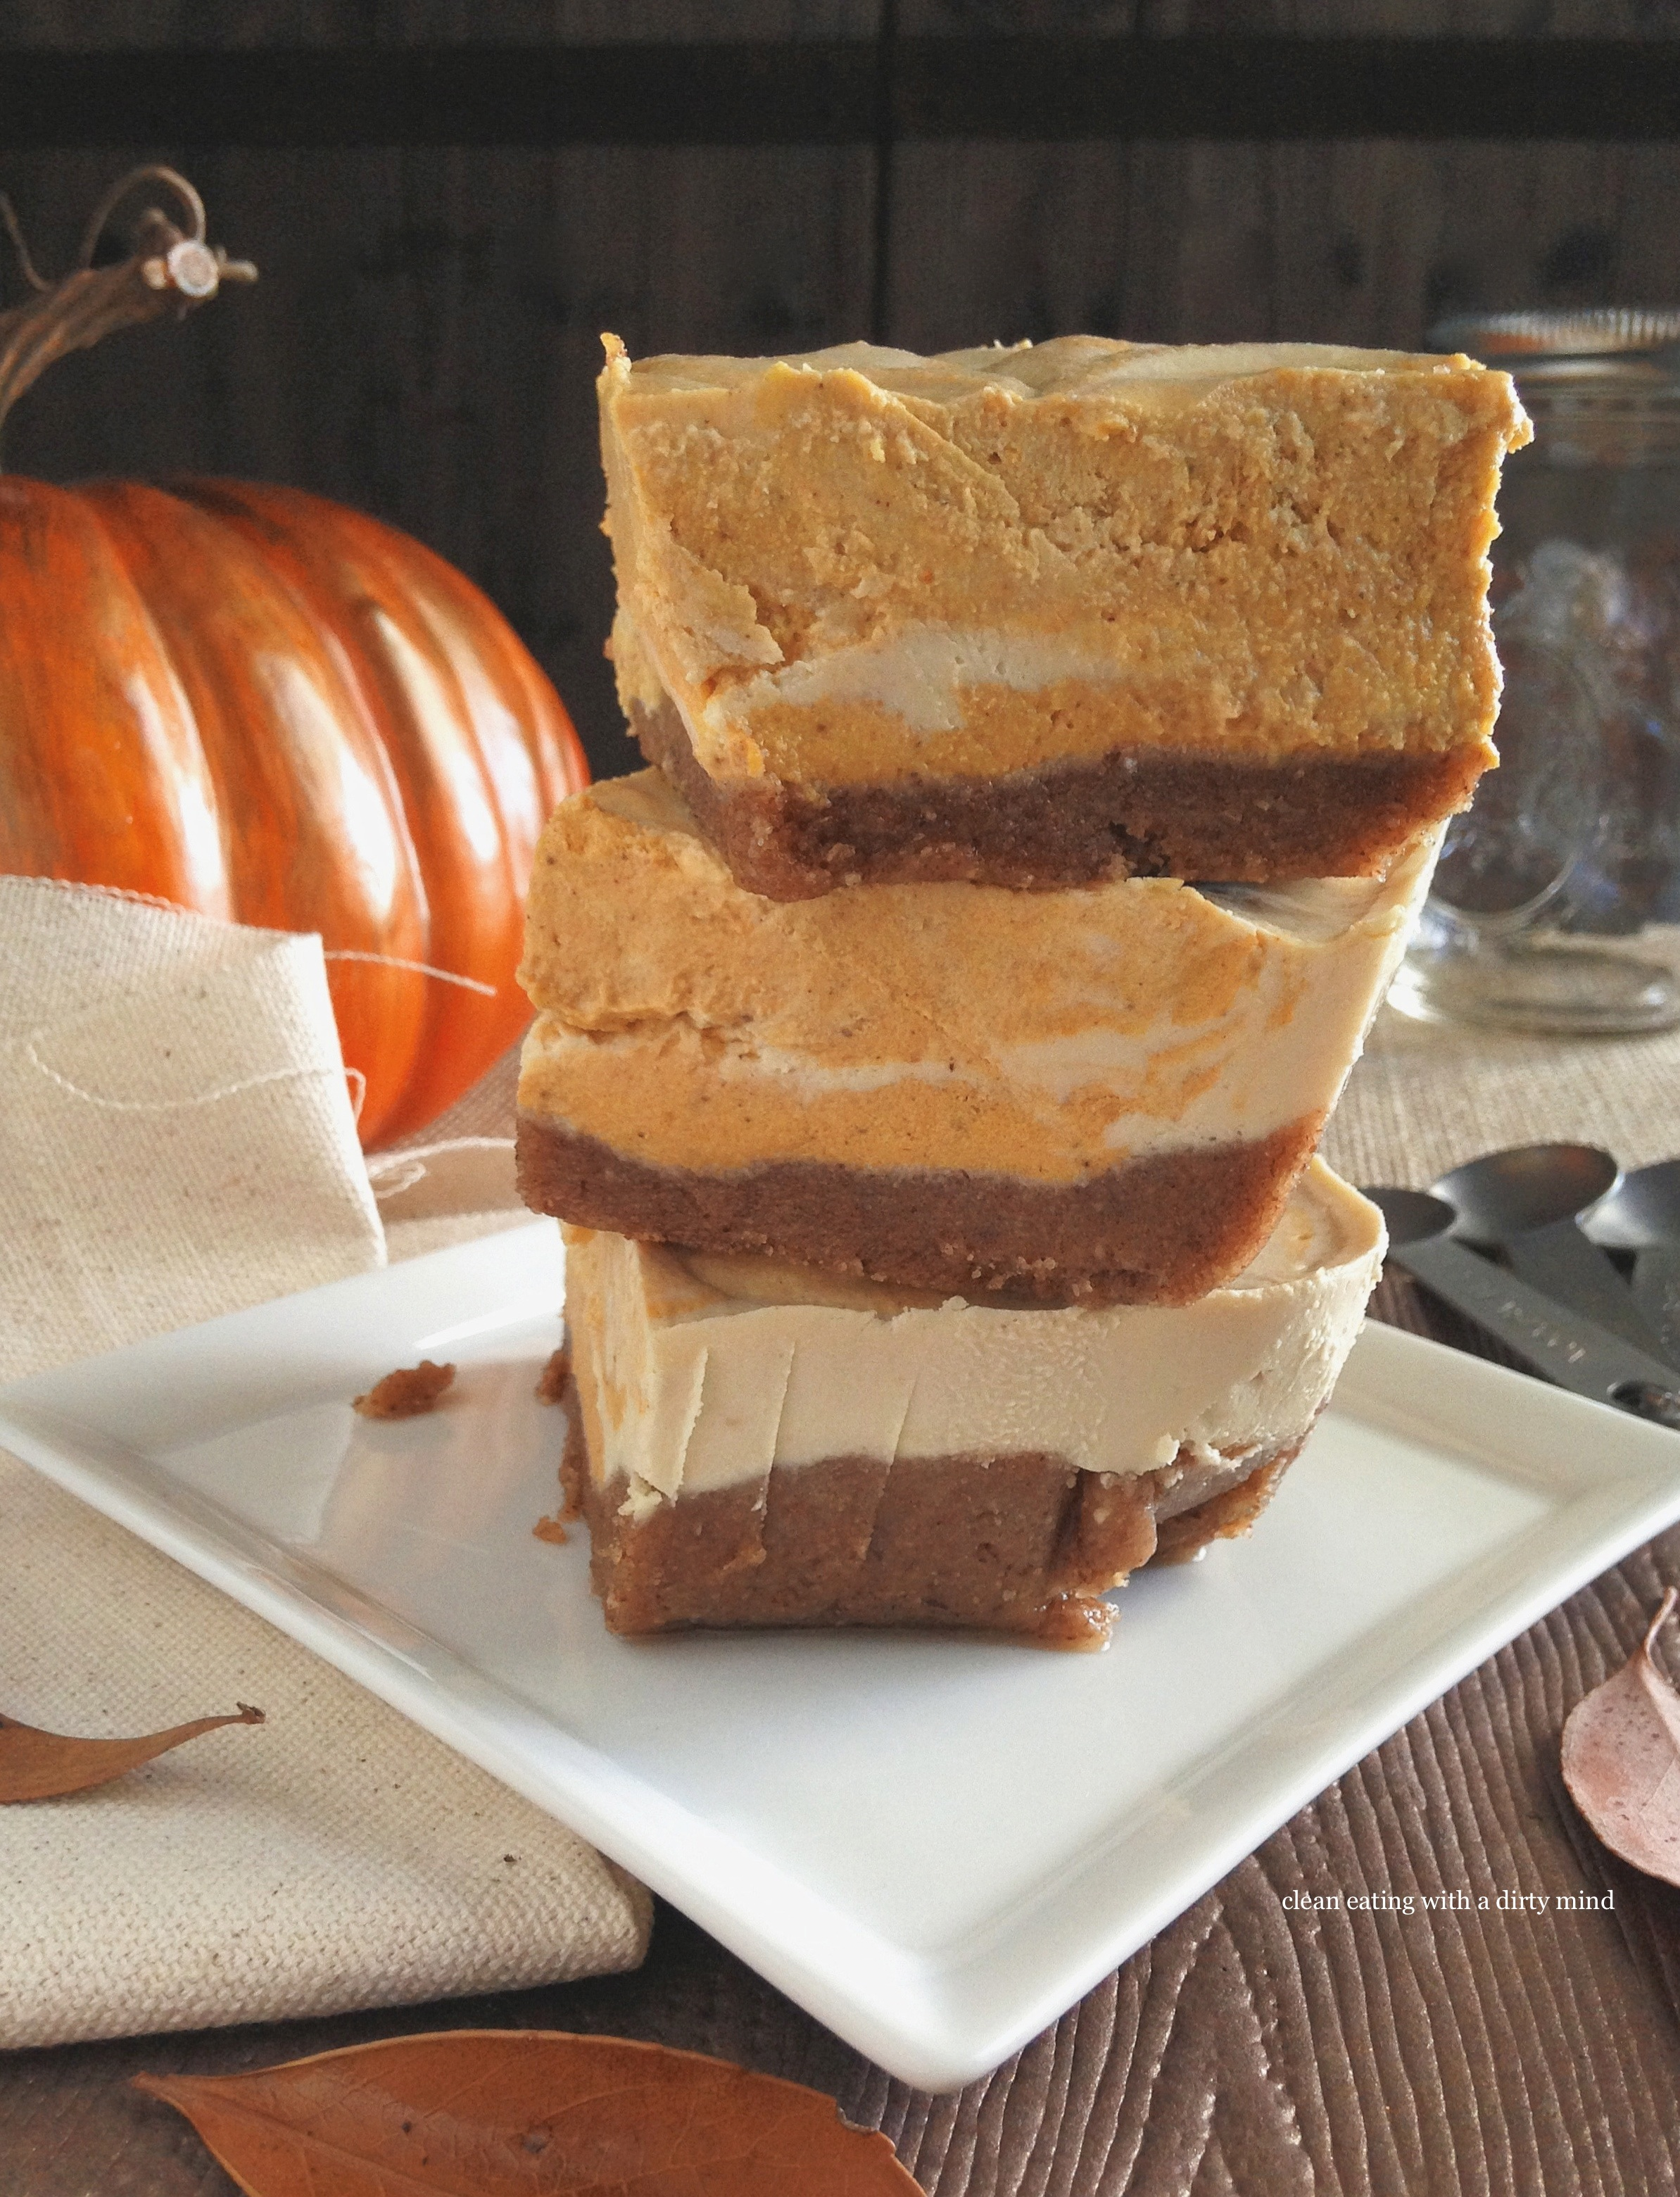 Impressive Home Sour Cream Pumpkin Swirl Cheesecake Taste Guest Vanessa From Clean Eating A Dirty Paleo Pumpkin Swirl Cheesecake nice food Pumpkin Swirl Cheesecake